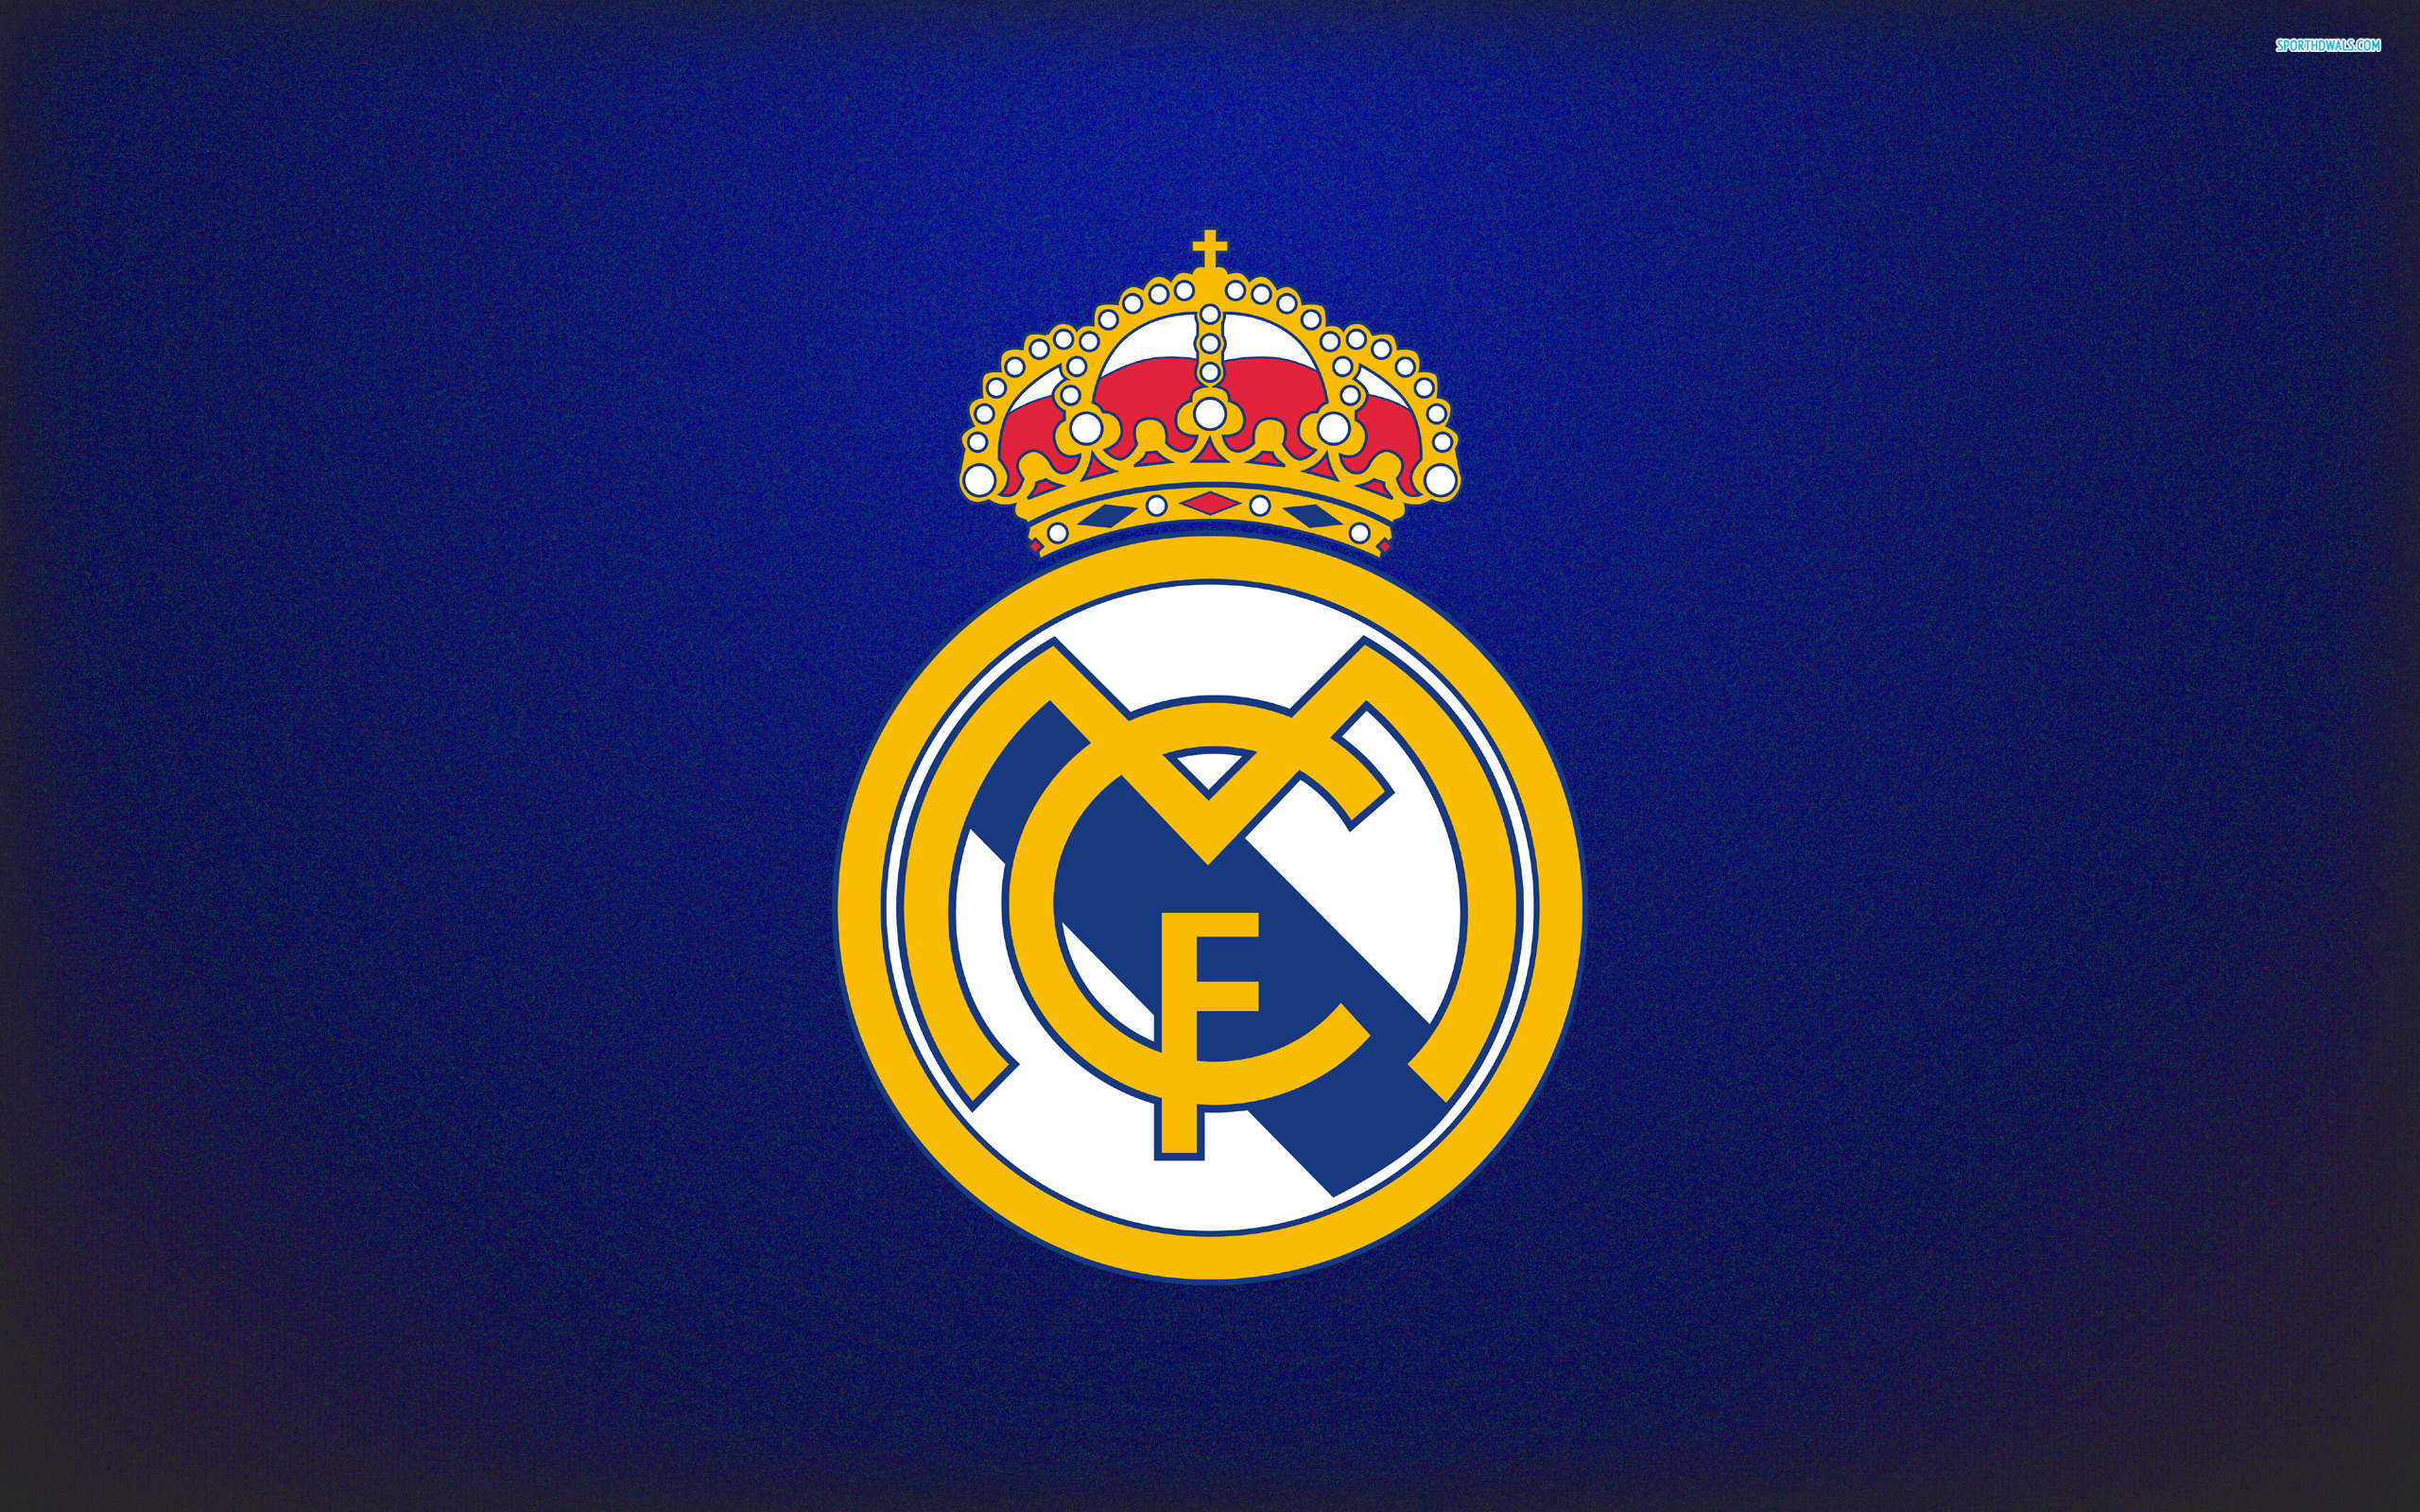 real madrid 3d logo image free wallpaper Wallpaper